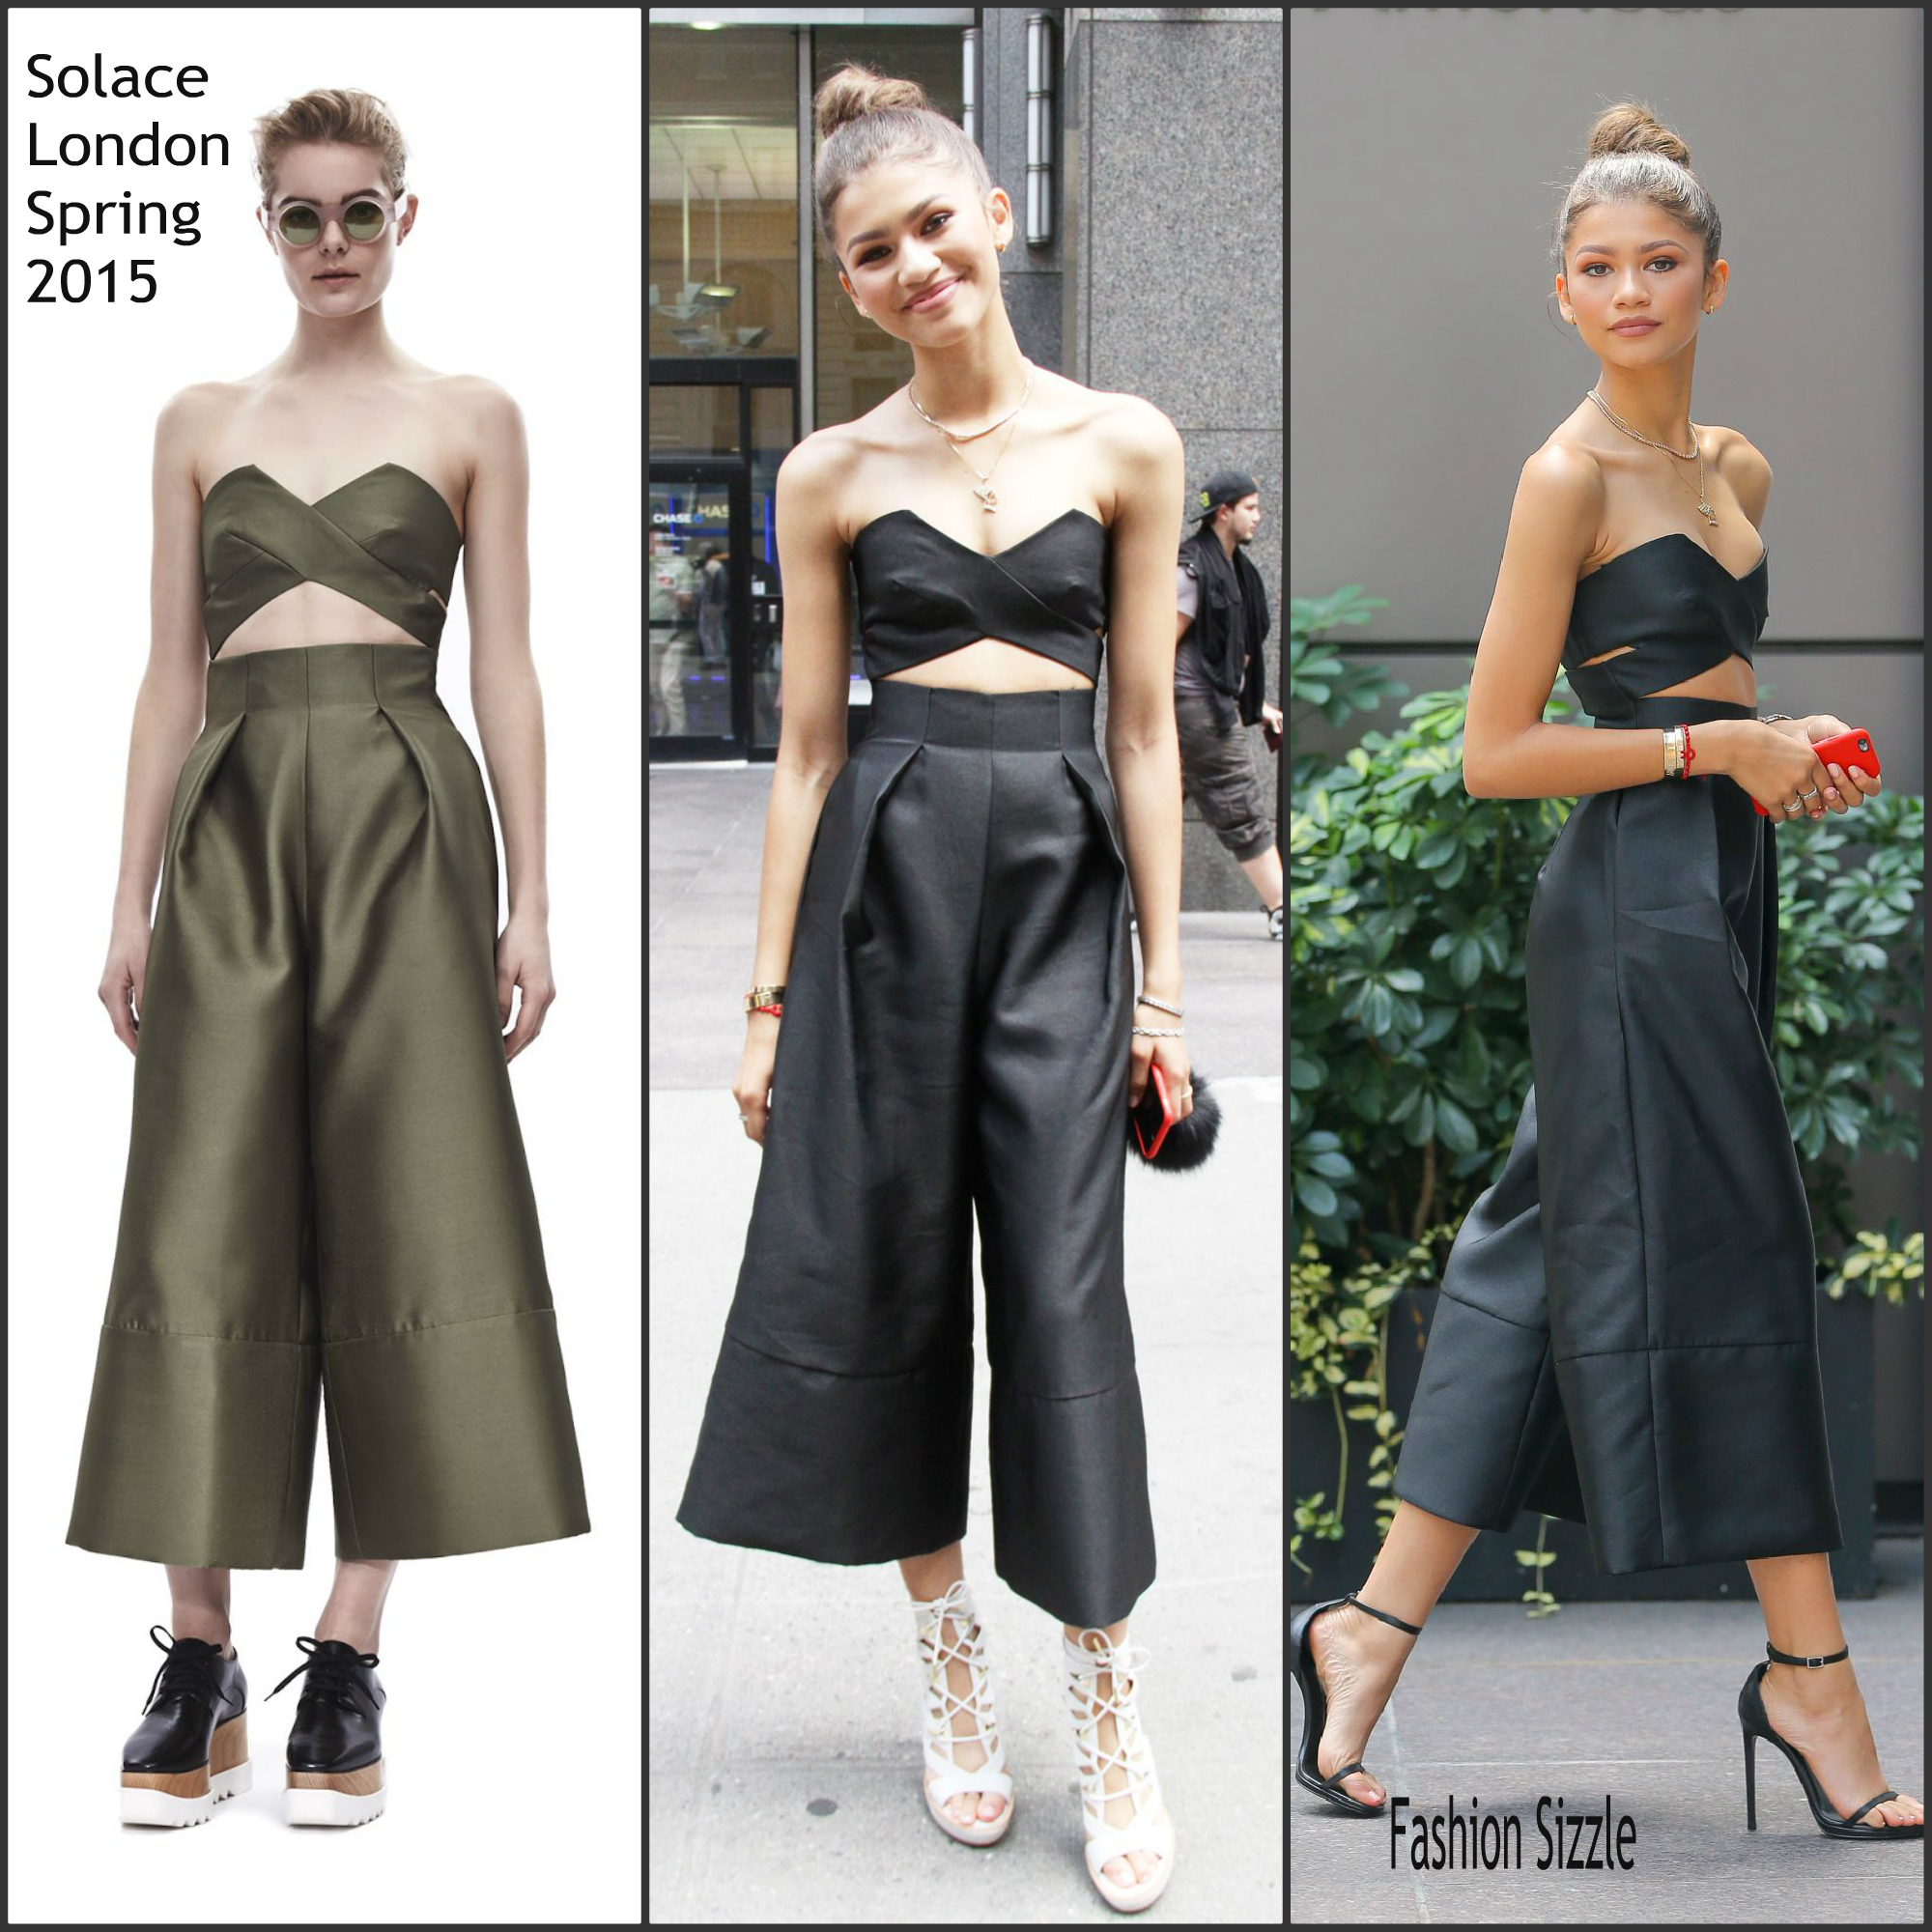 Zendaya-Coleman-in-Solace-london-out-in-new-york